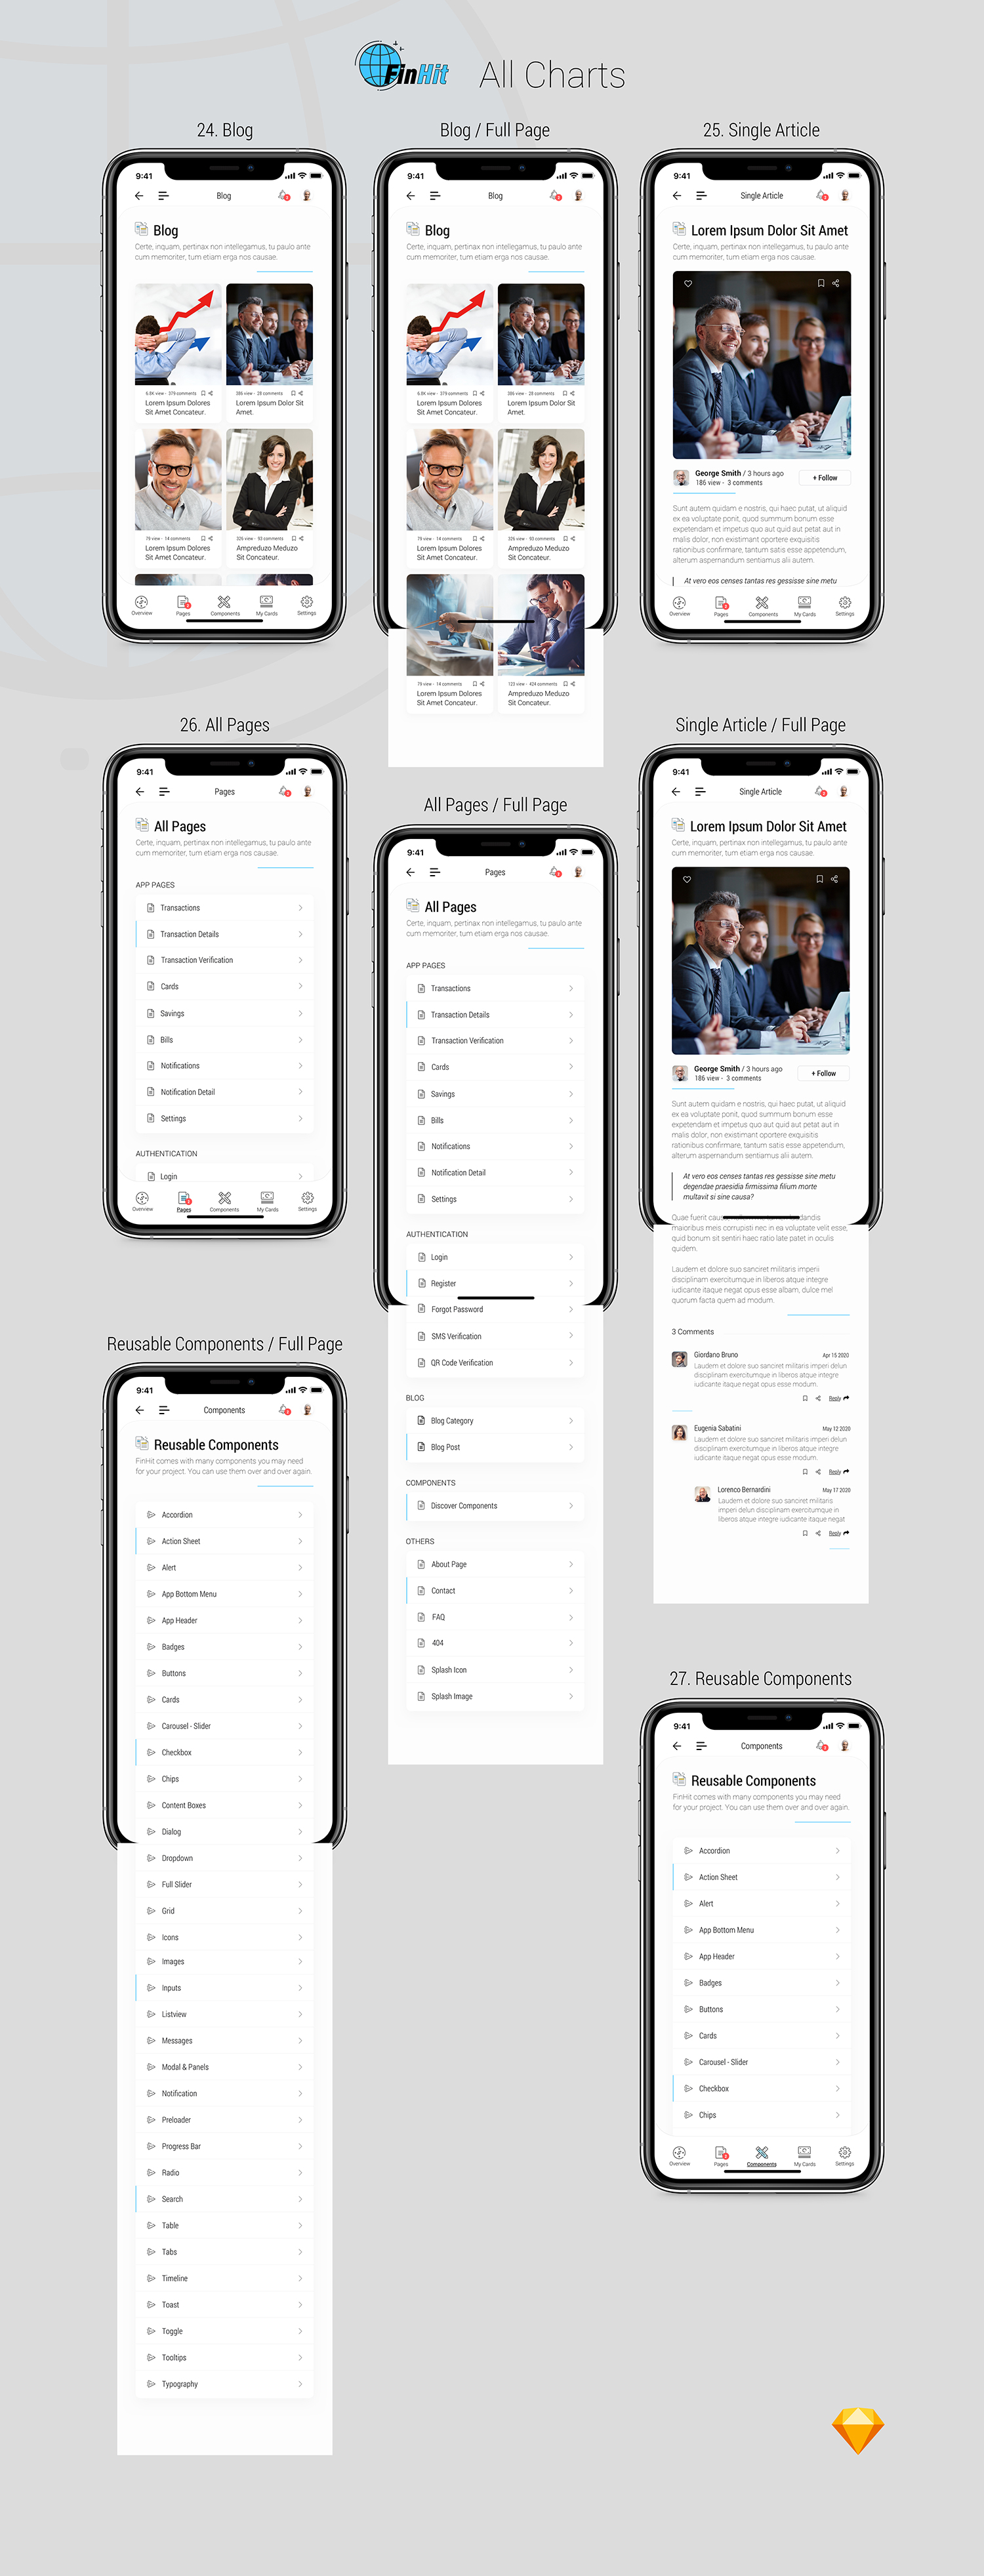 FinHit - Wallet & Banking UI Kit for iOS & Android - 11